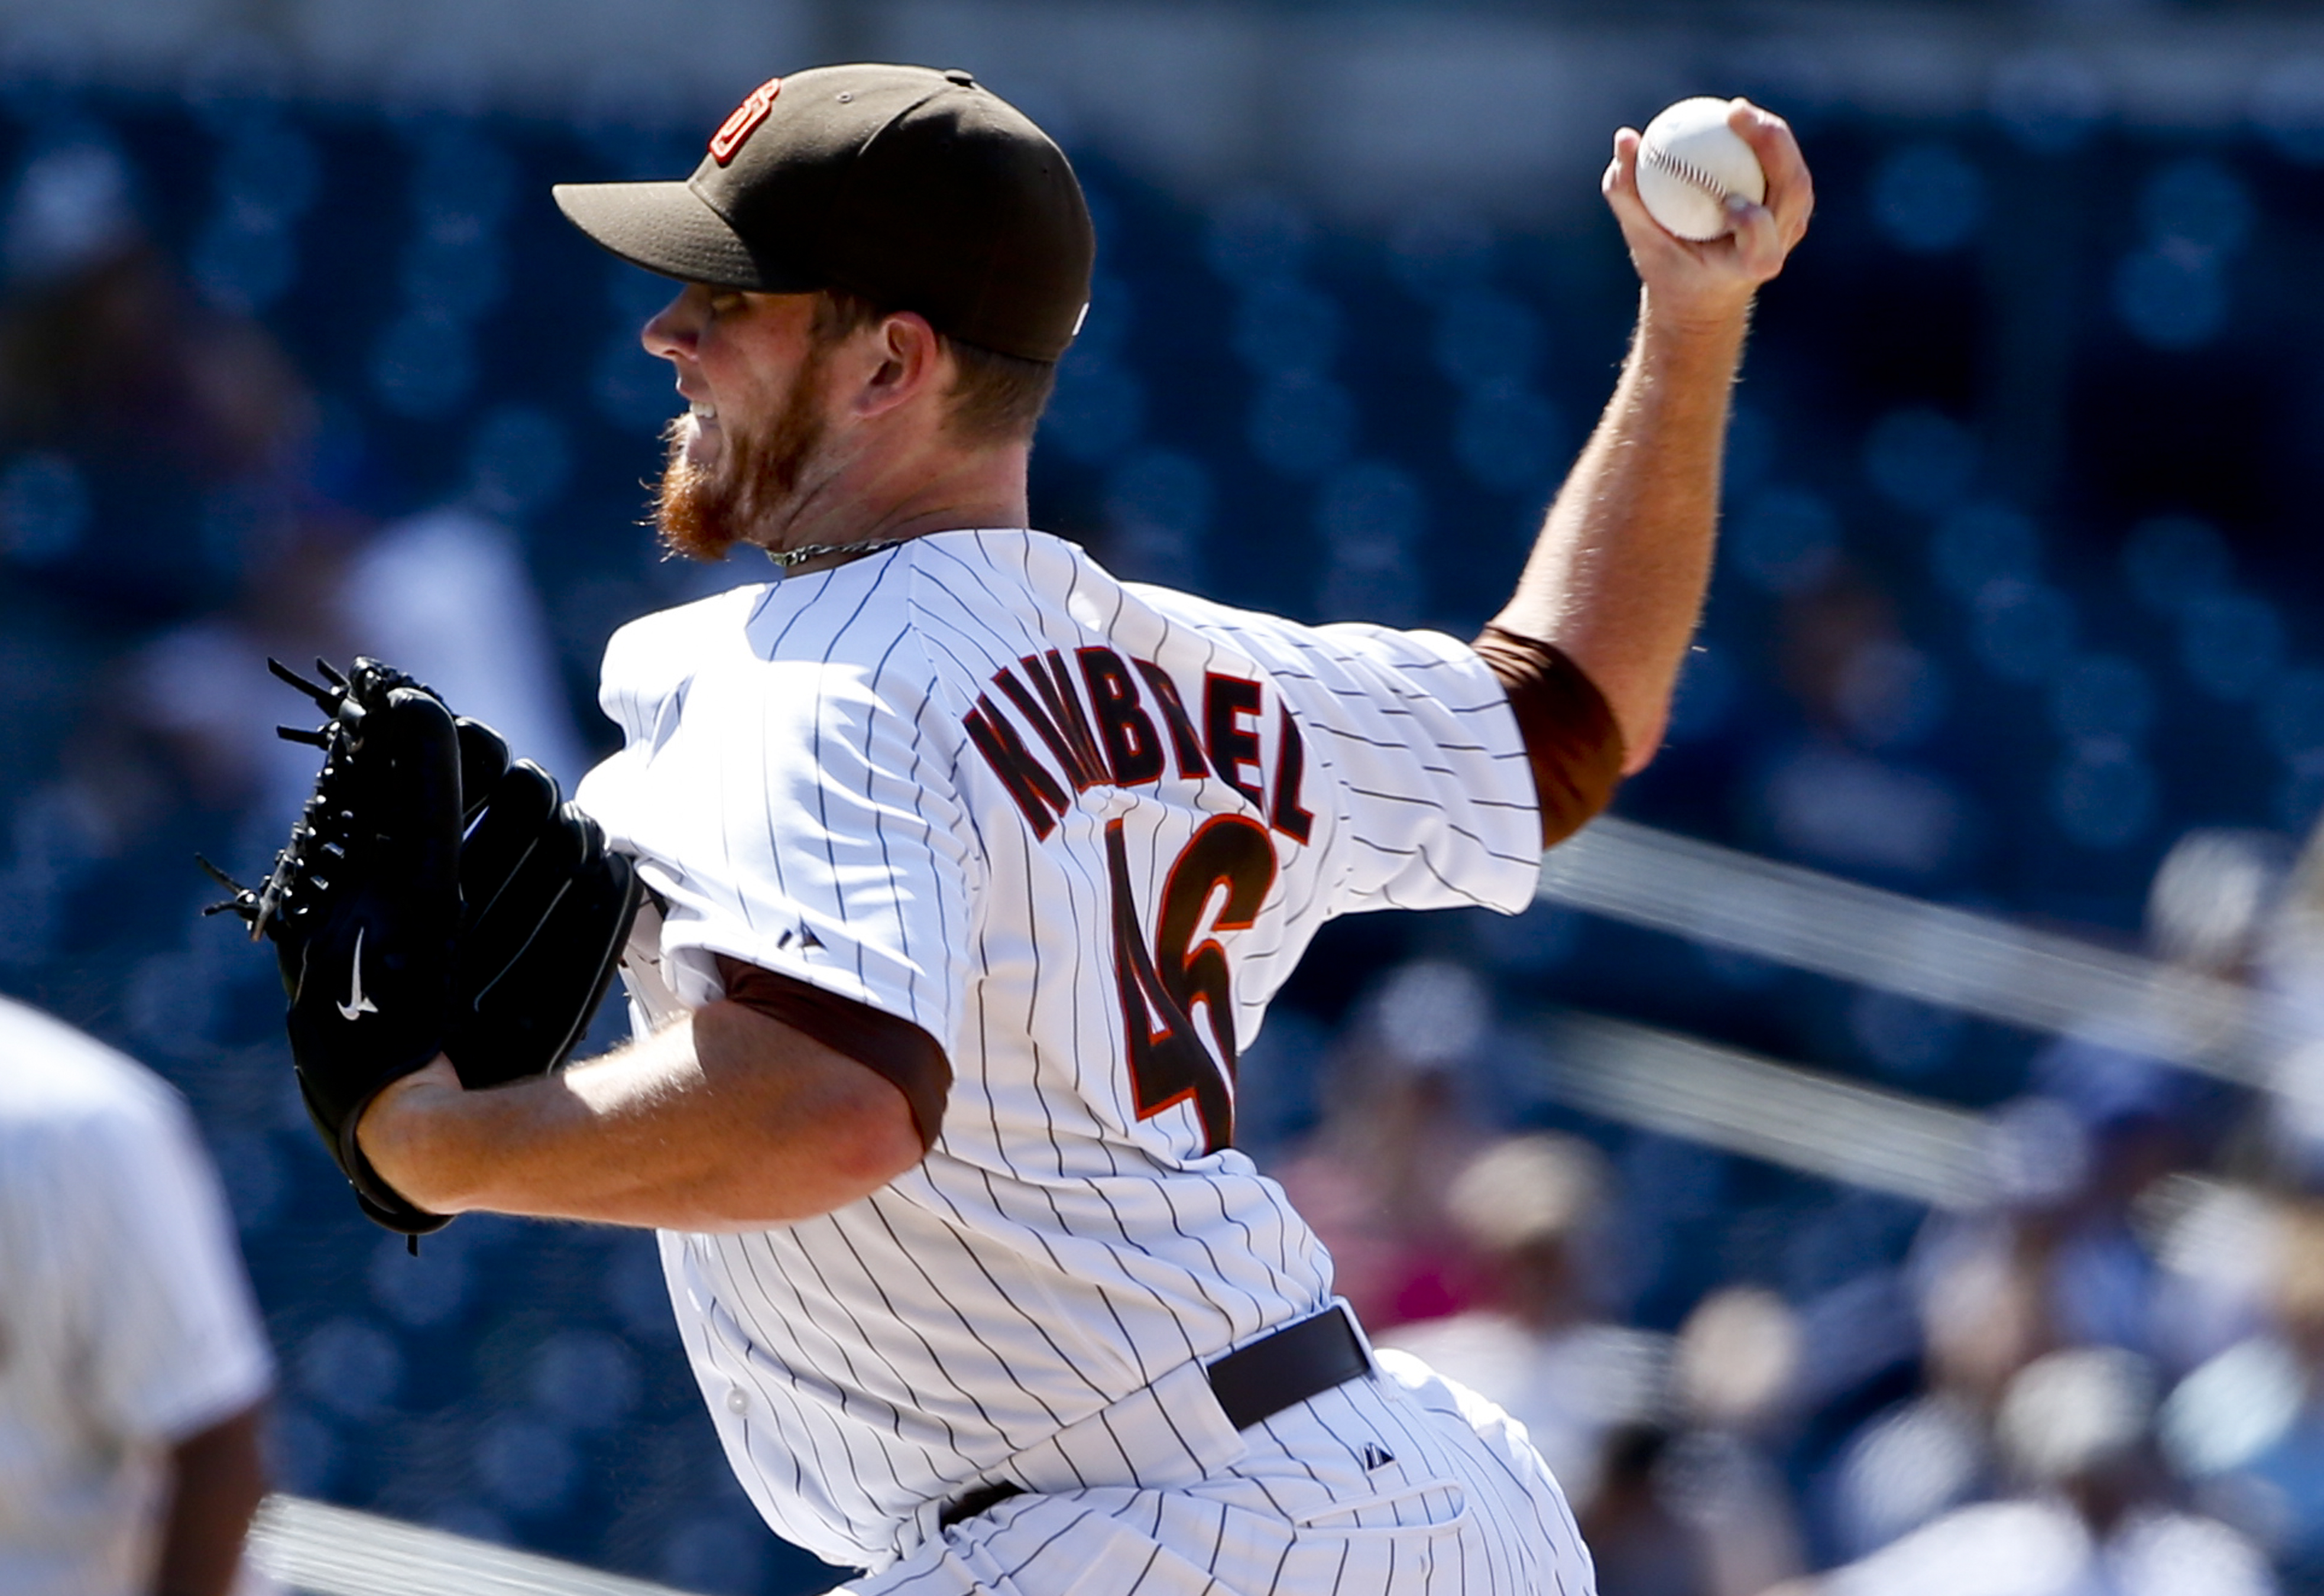 San Diego Padres closer Craig Kimbrel pitches while saving the Padres' 3-2 victory over the Atlanta Braves in a baseball game Wednesday, Aug. 19, 2015, in San Diego. (AP Photo/Lenny Ignelzi)